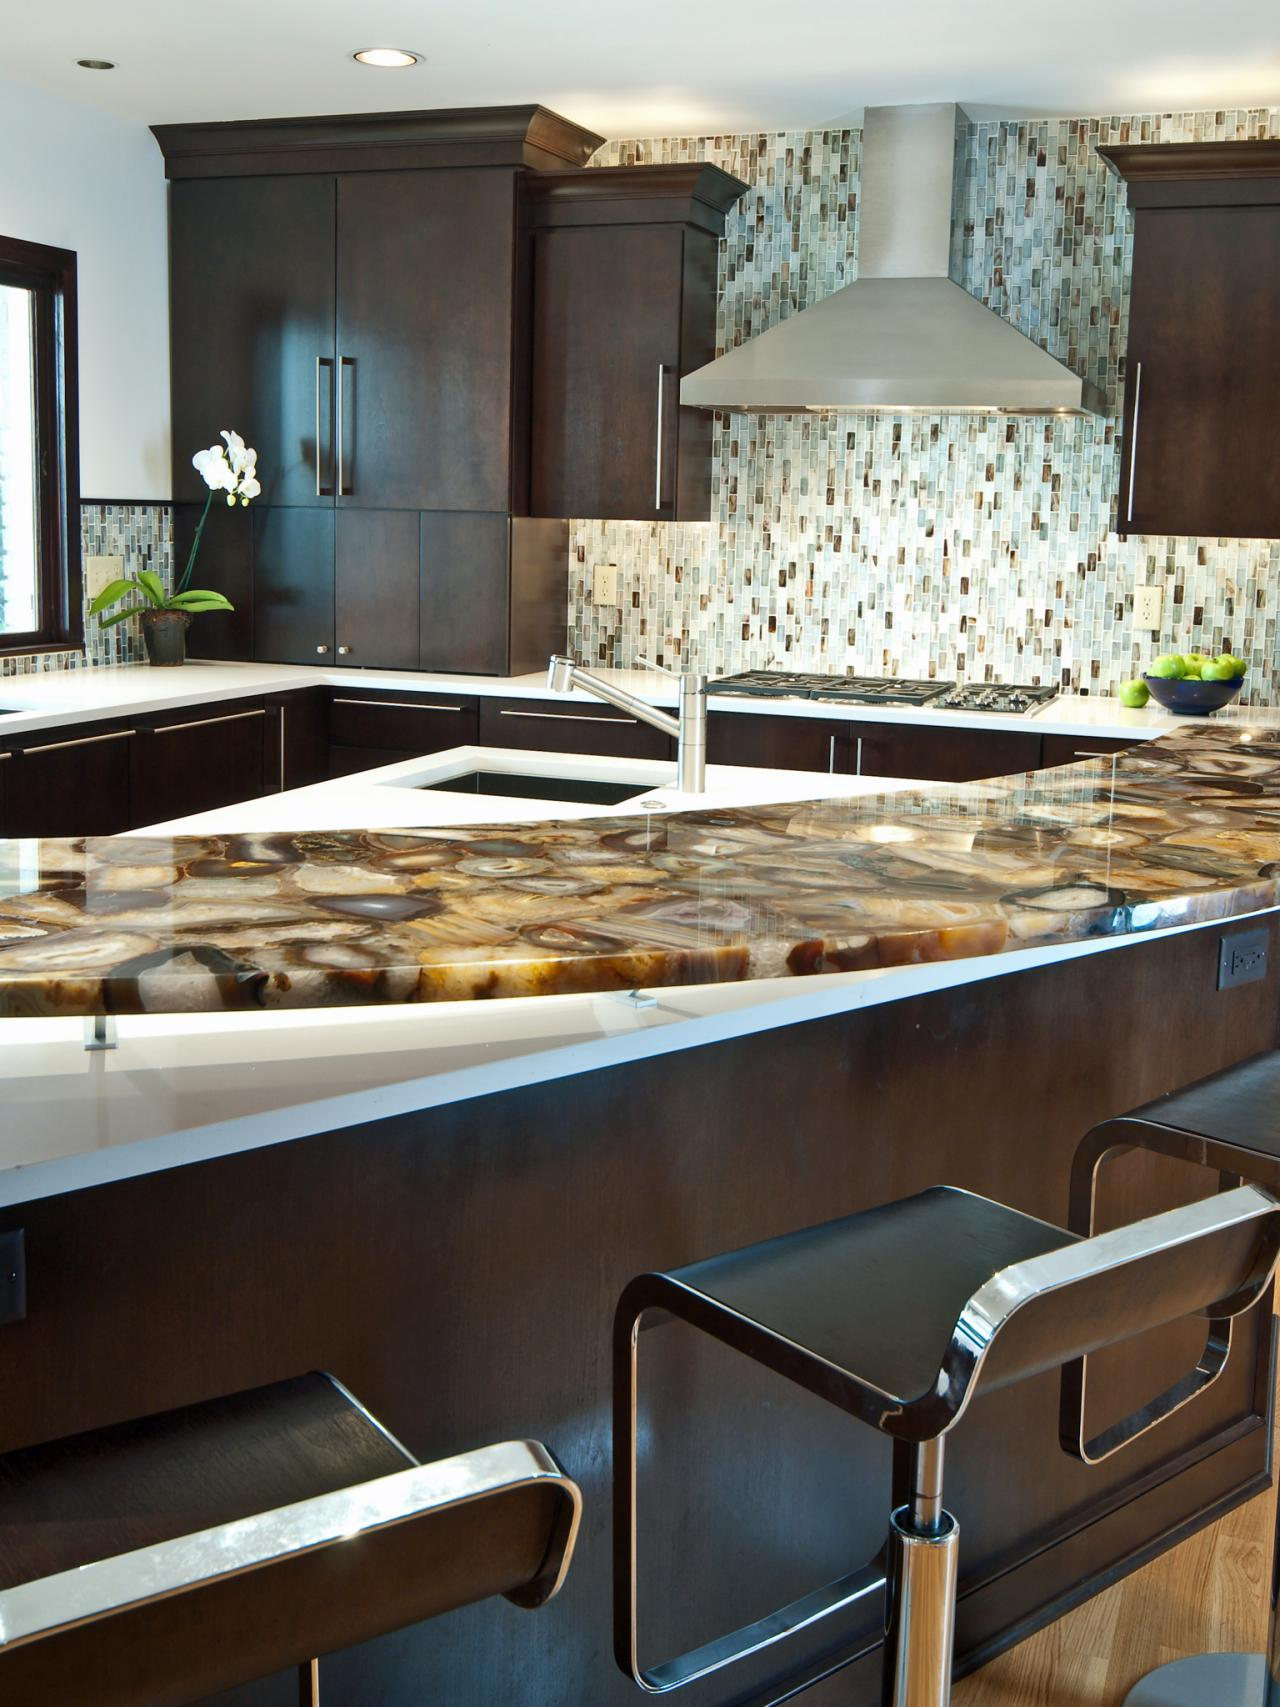 10 high end kitchen countertop choices kitchen ideas for Black onyx kitchen cabinets